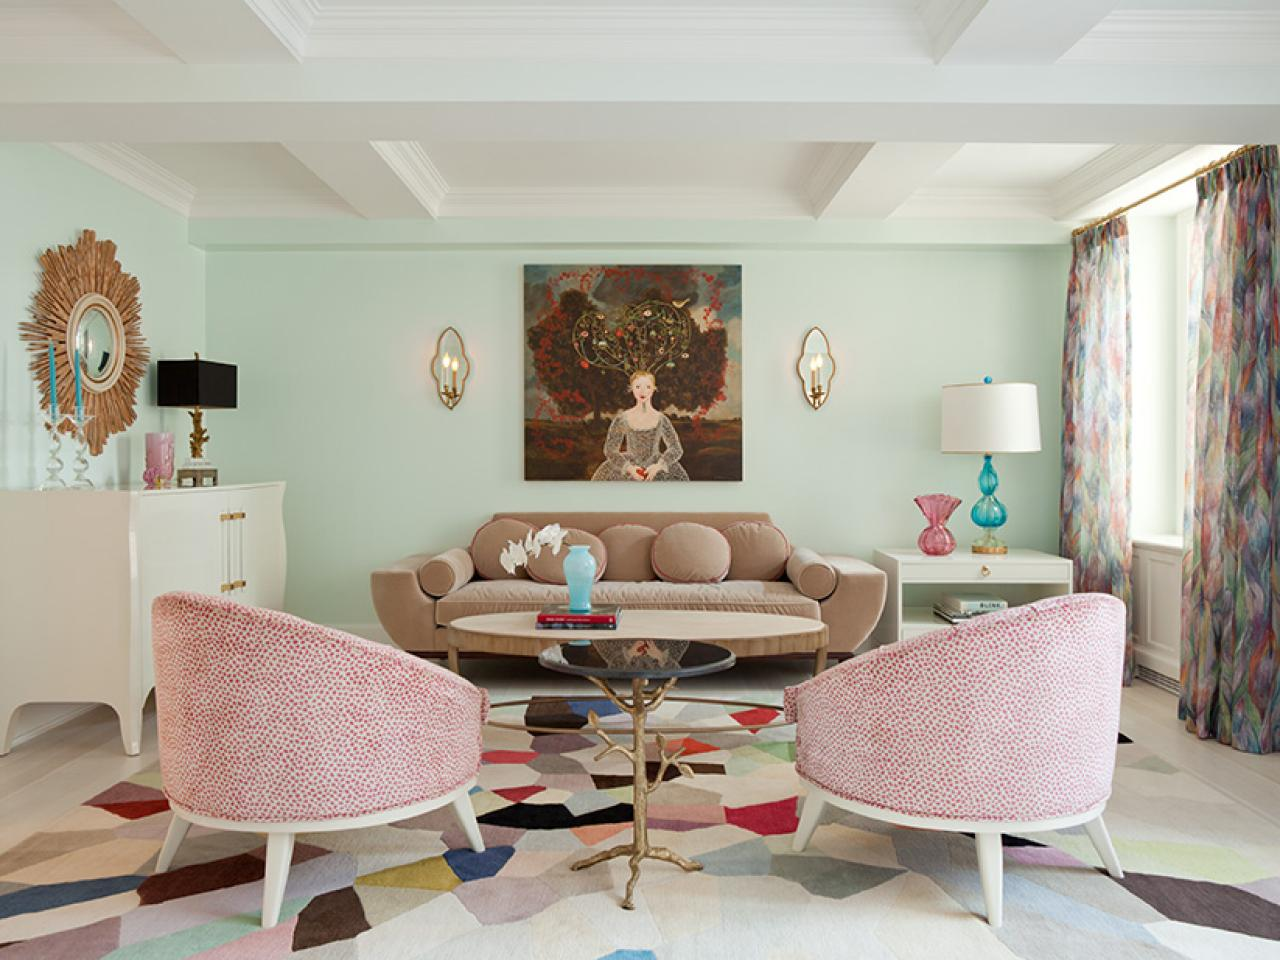 Millennial pink millennial pink find out the best way to use millennial pink in your mid